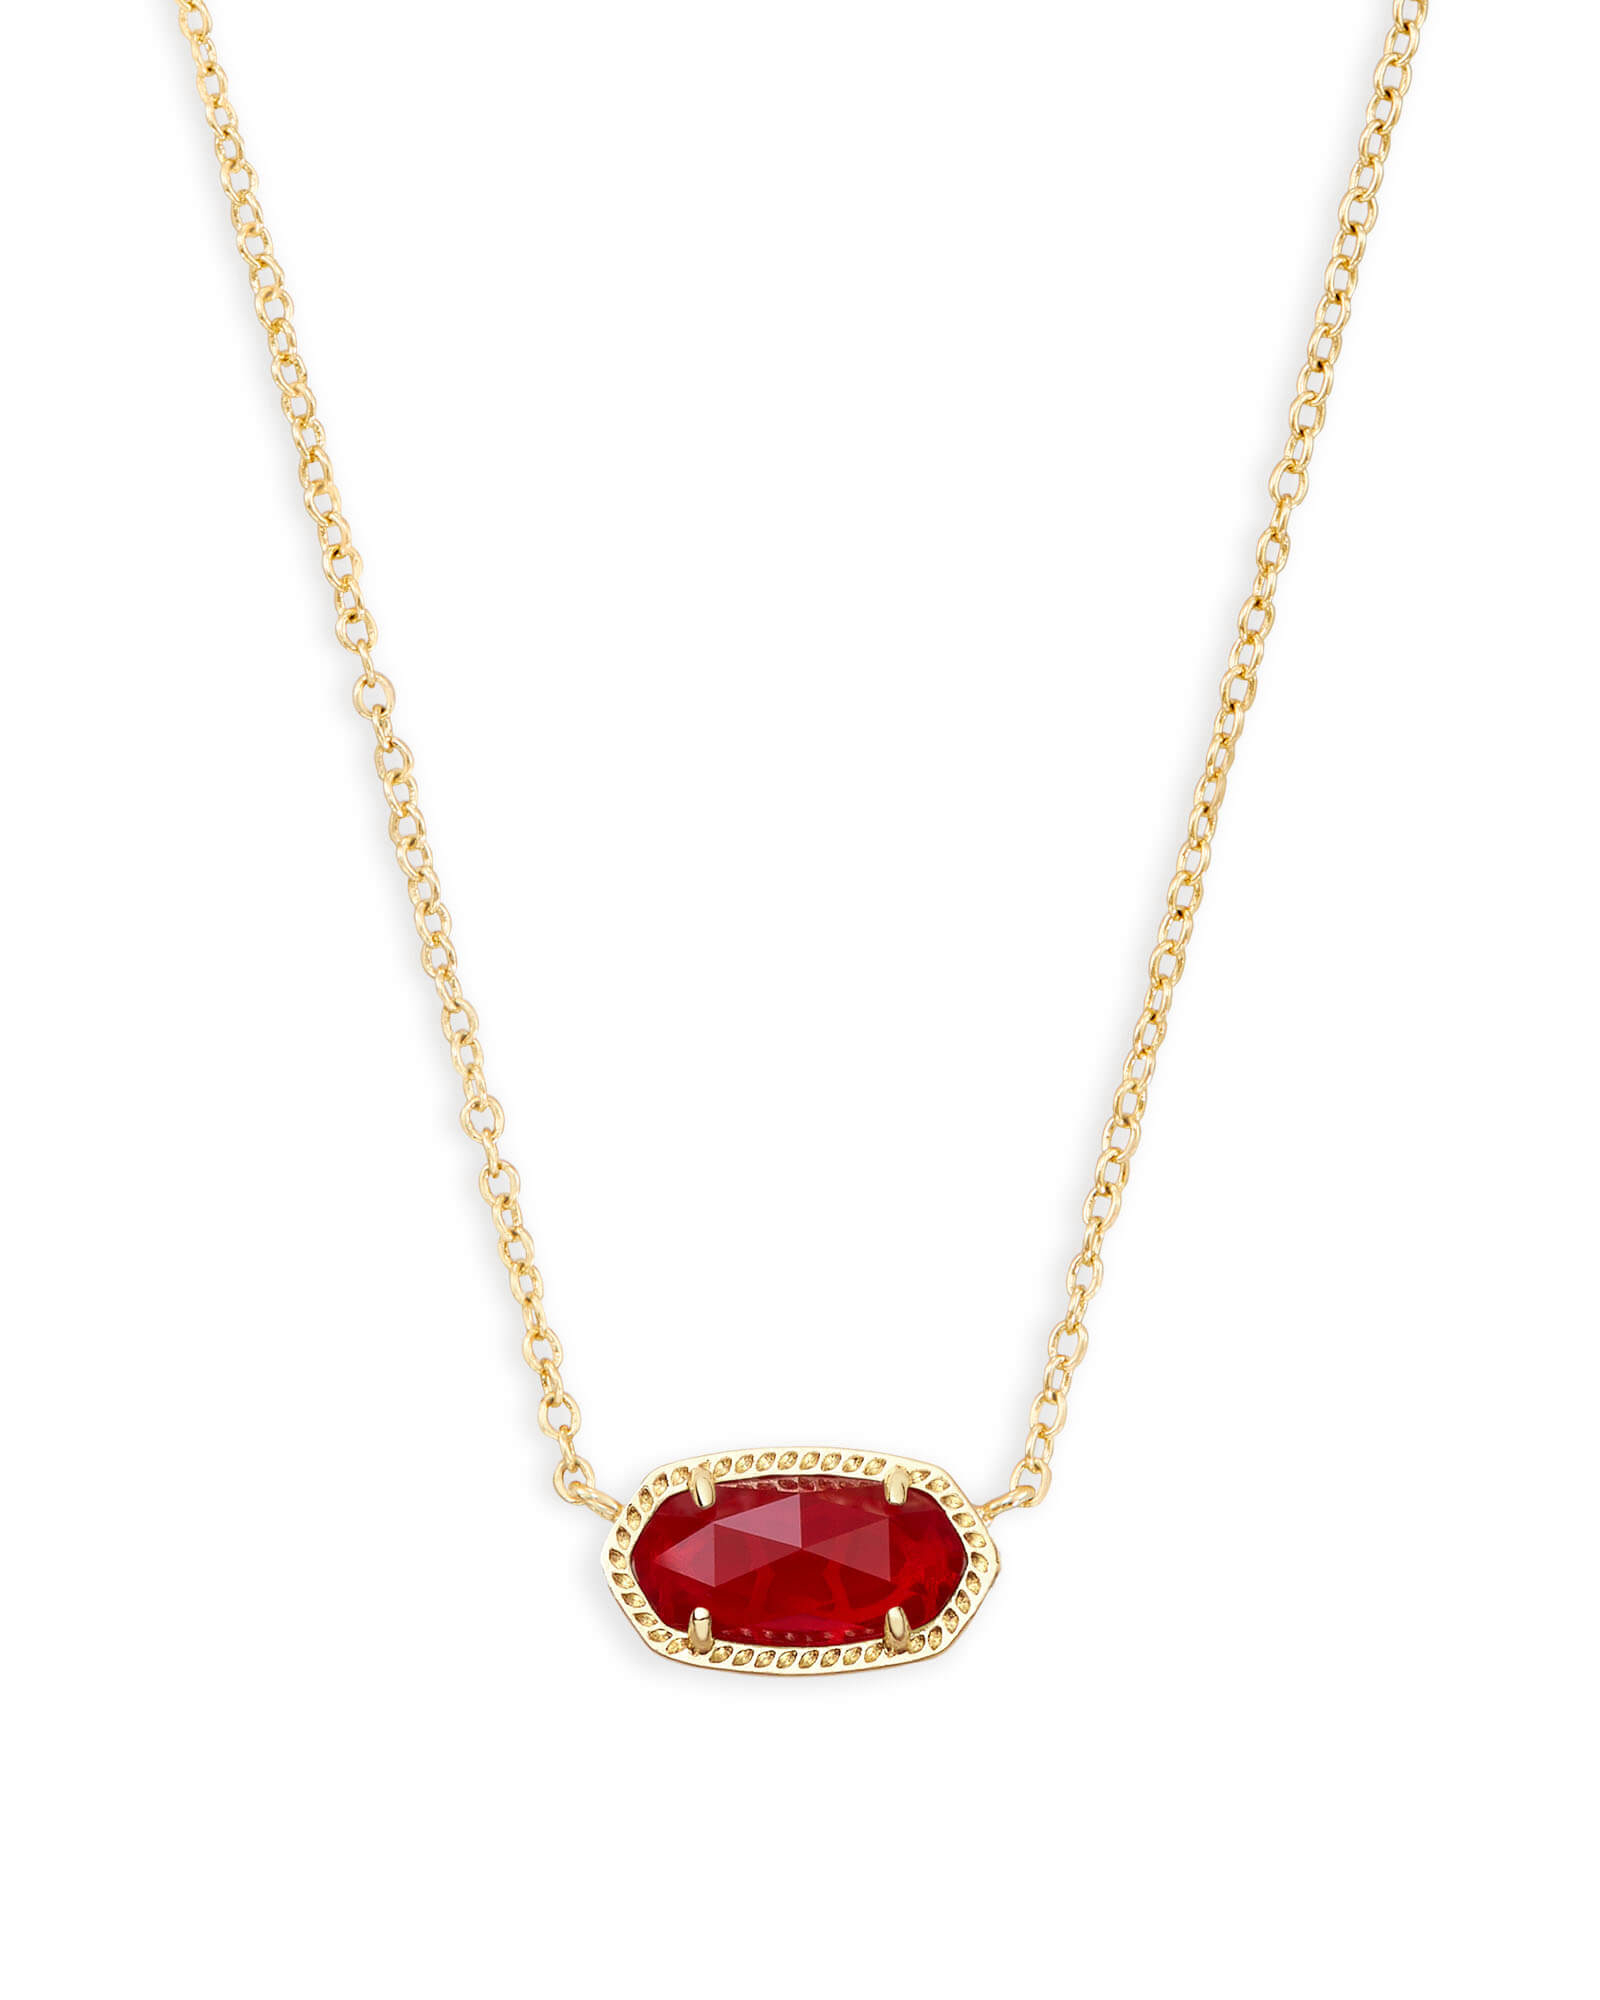 Elisa Gold Pendant Necklace In Ruby Red | Kendra Scott With Regard To Best And Newest July Droplet Pendant, Synthetic Ruby Necklaces (View 12 of 25)